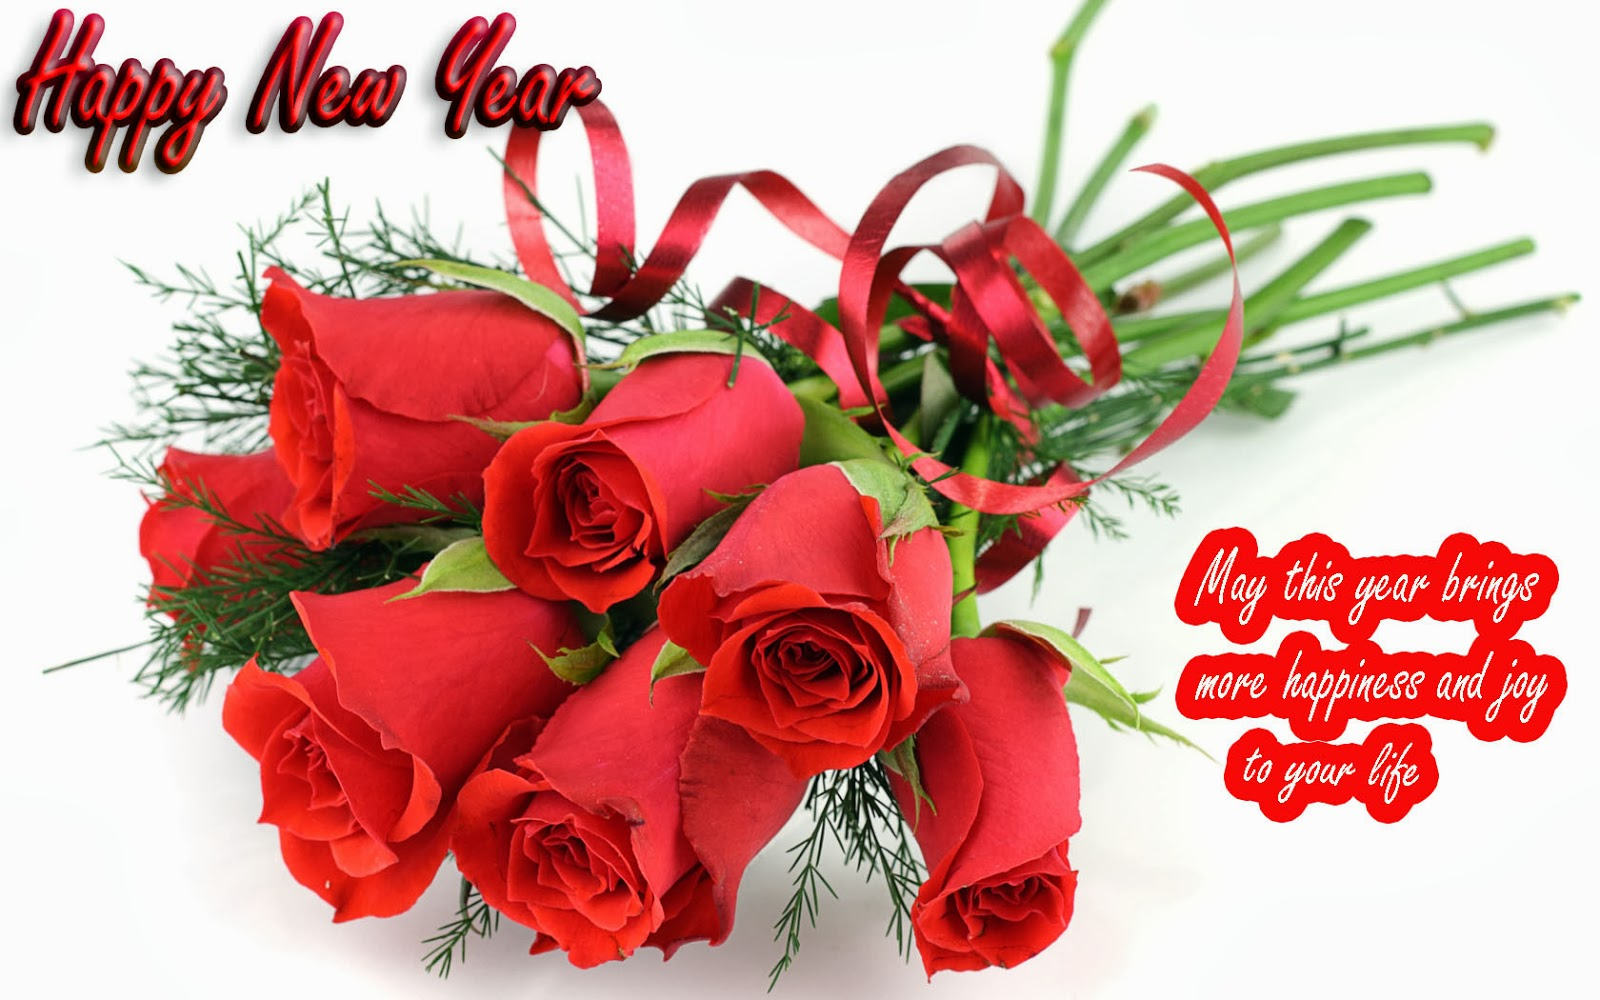 Free Online Greeting Card Wallpapers Best Wishes New Years Eve